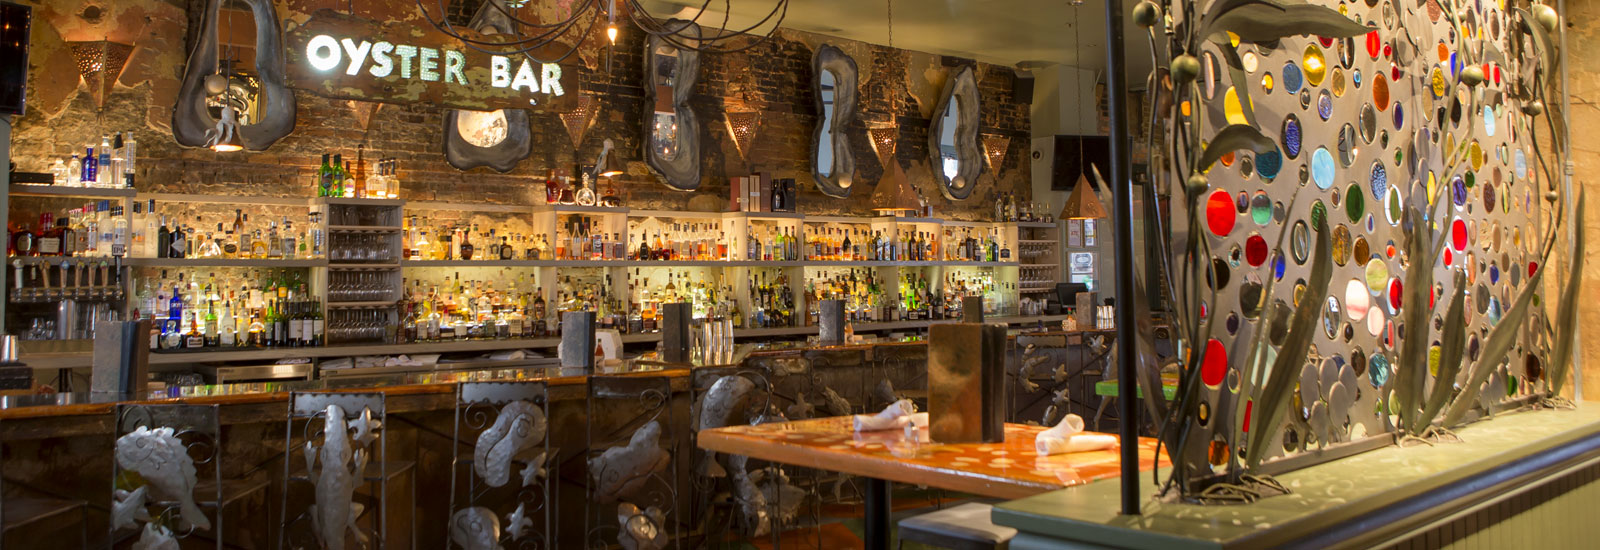 The Oyster Bar at Red Fish Grill shown with alligator barstools and oyster themed mirrors along the wall